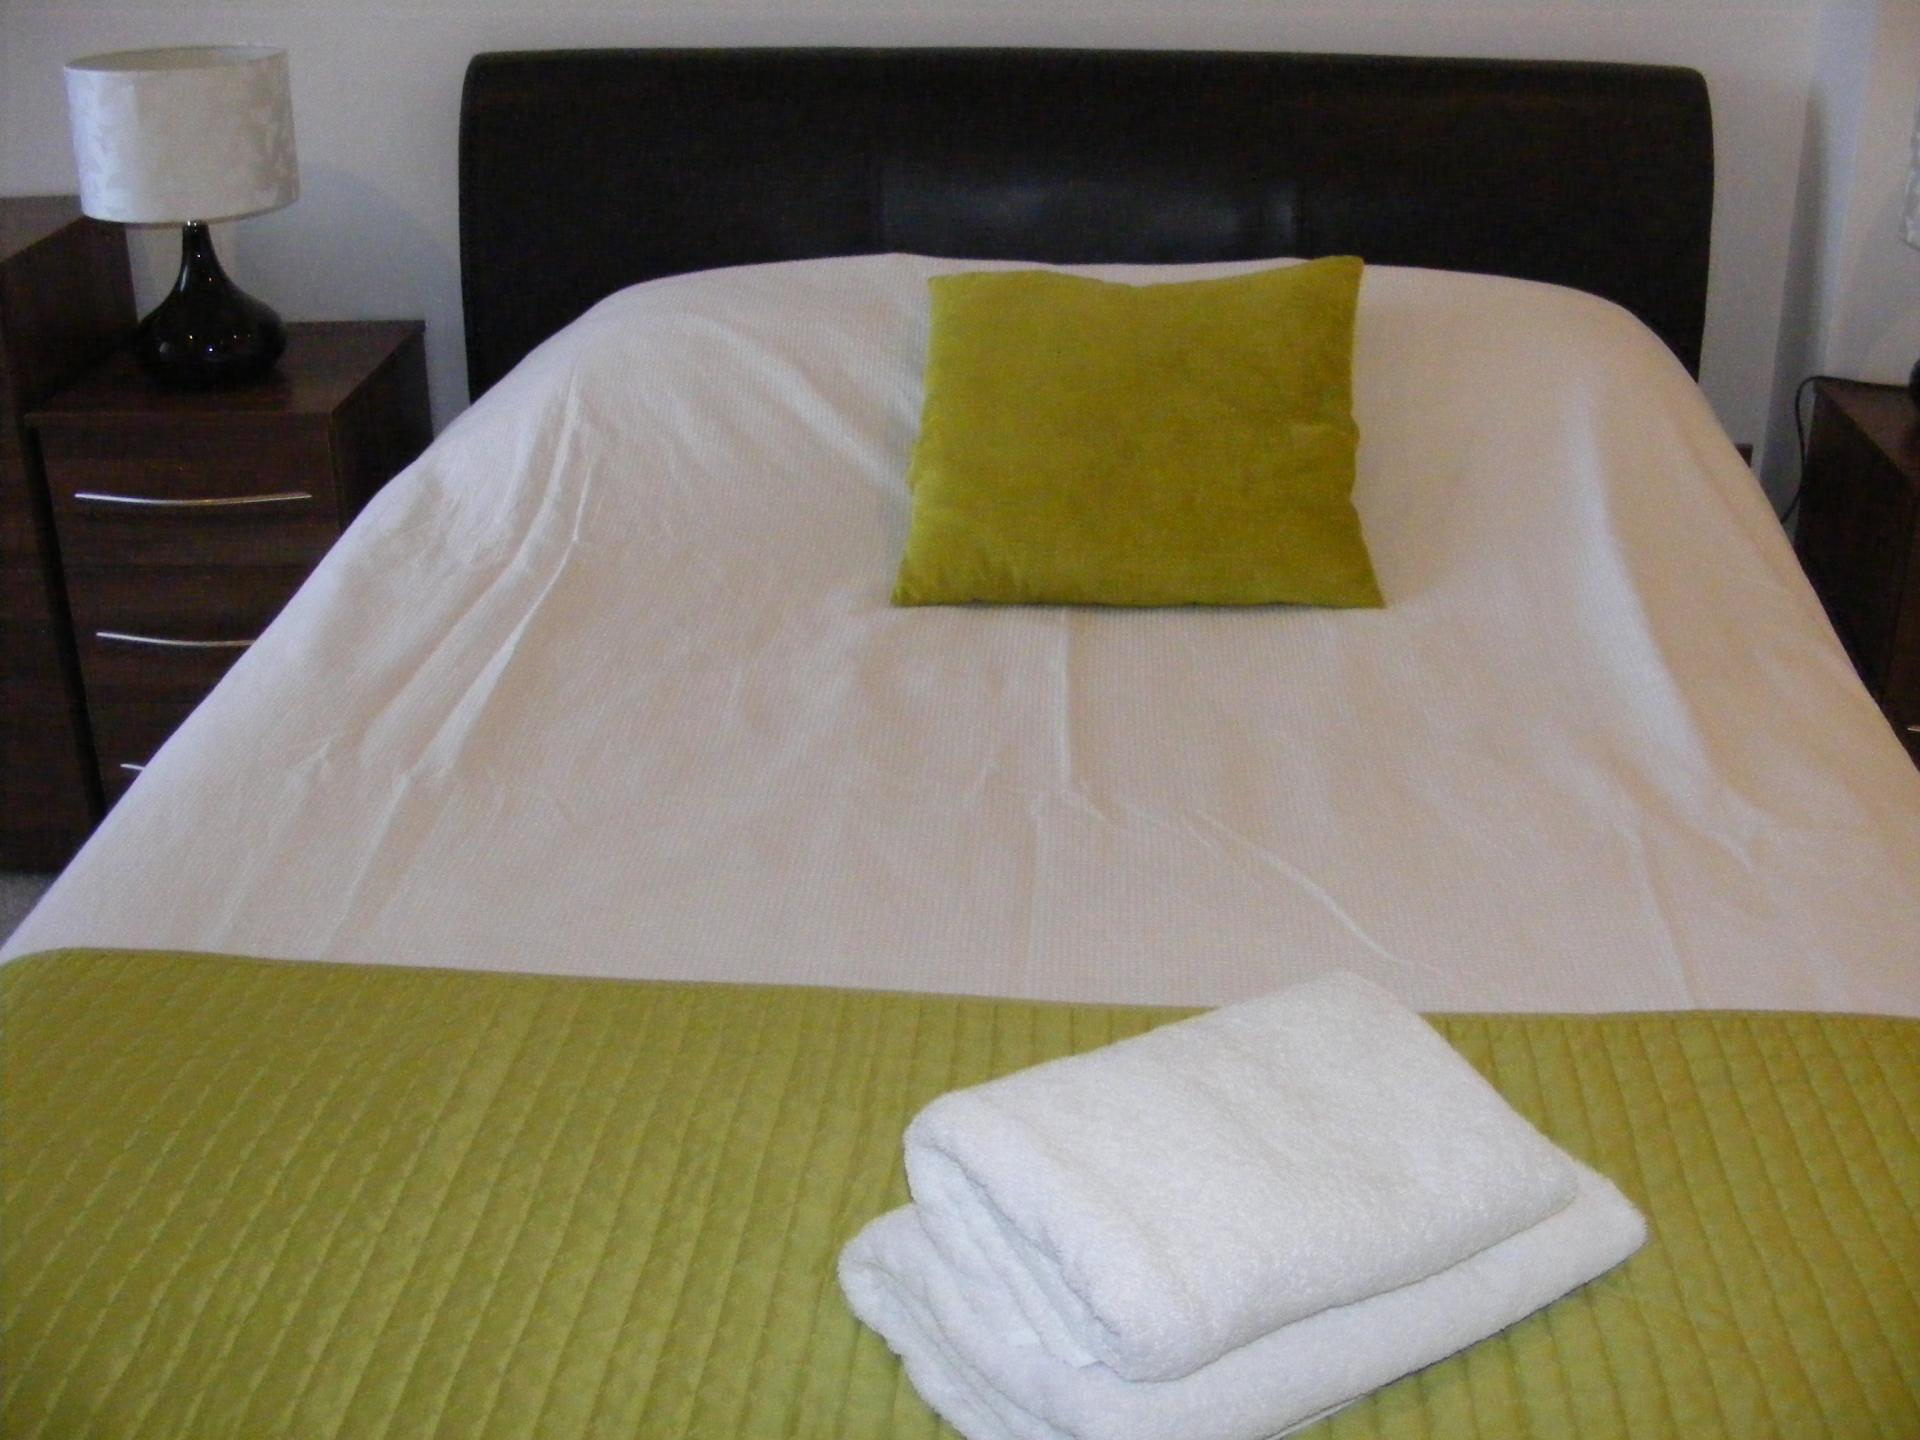 Towels at Baystays Apartments, Centre, Swansea - Citybase Apartments